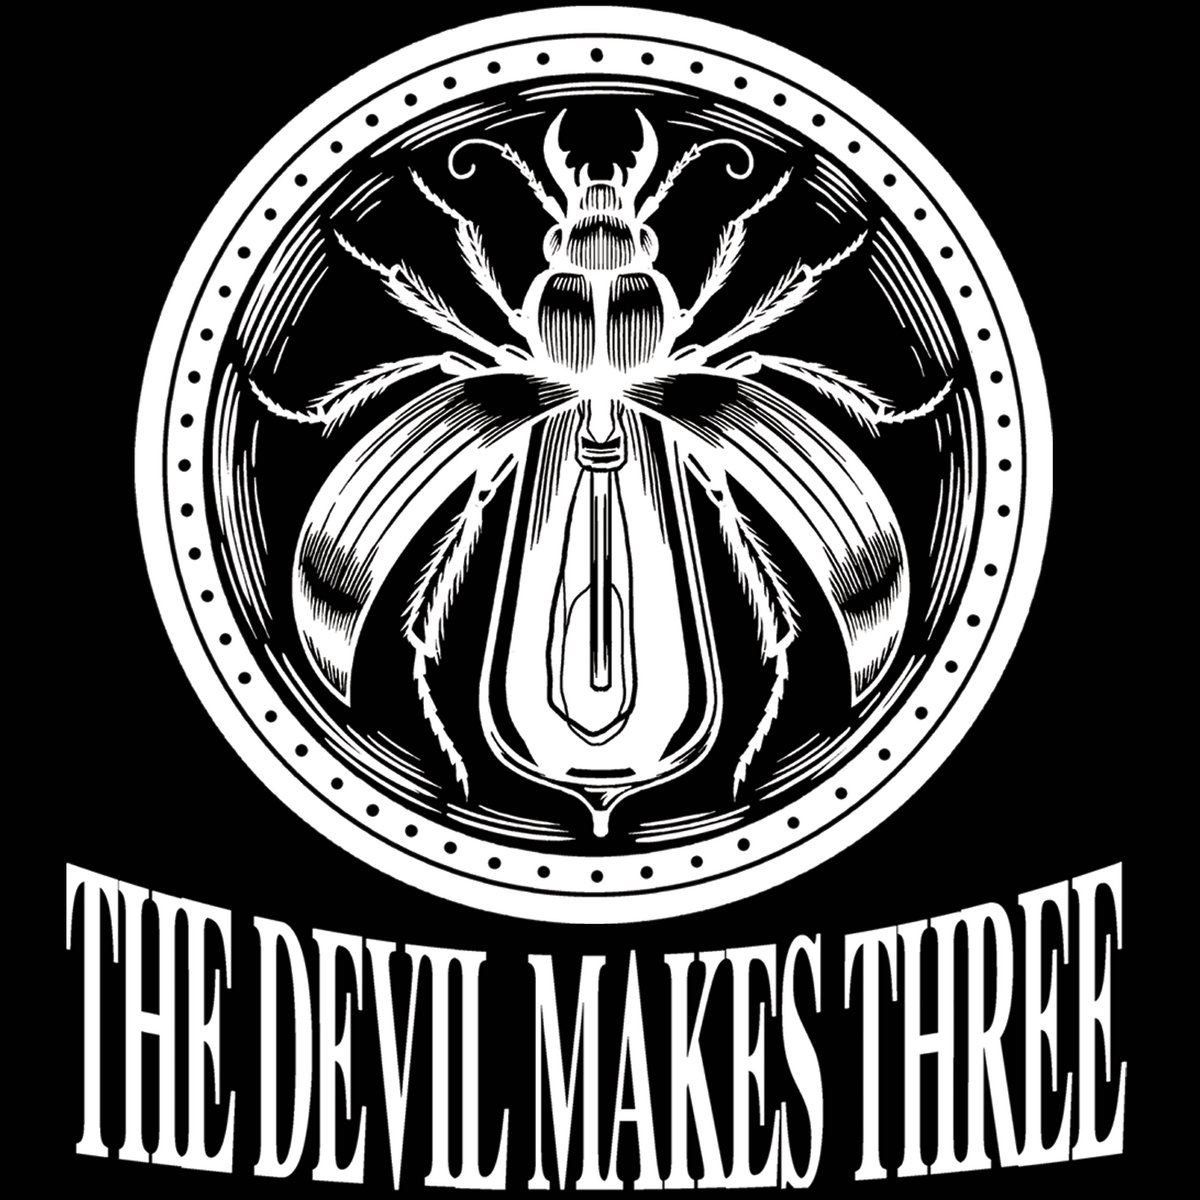 summer fall 2015 free download the devil makes three summer fall 2015 free download